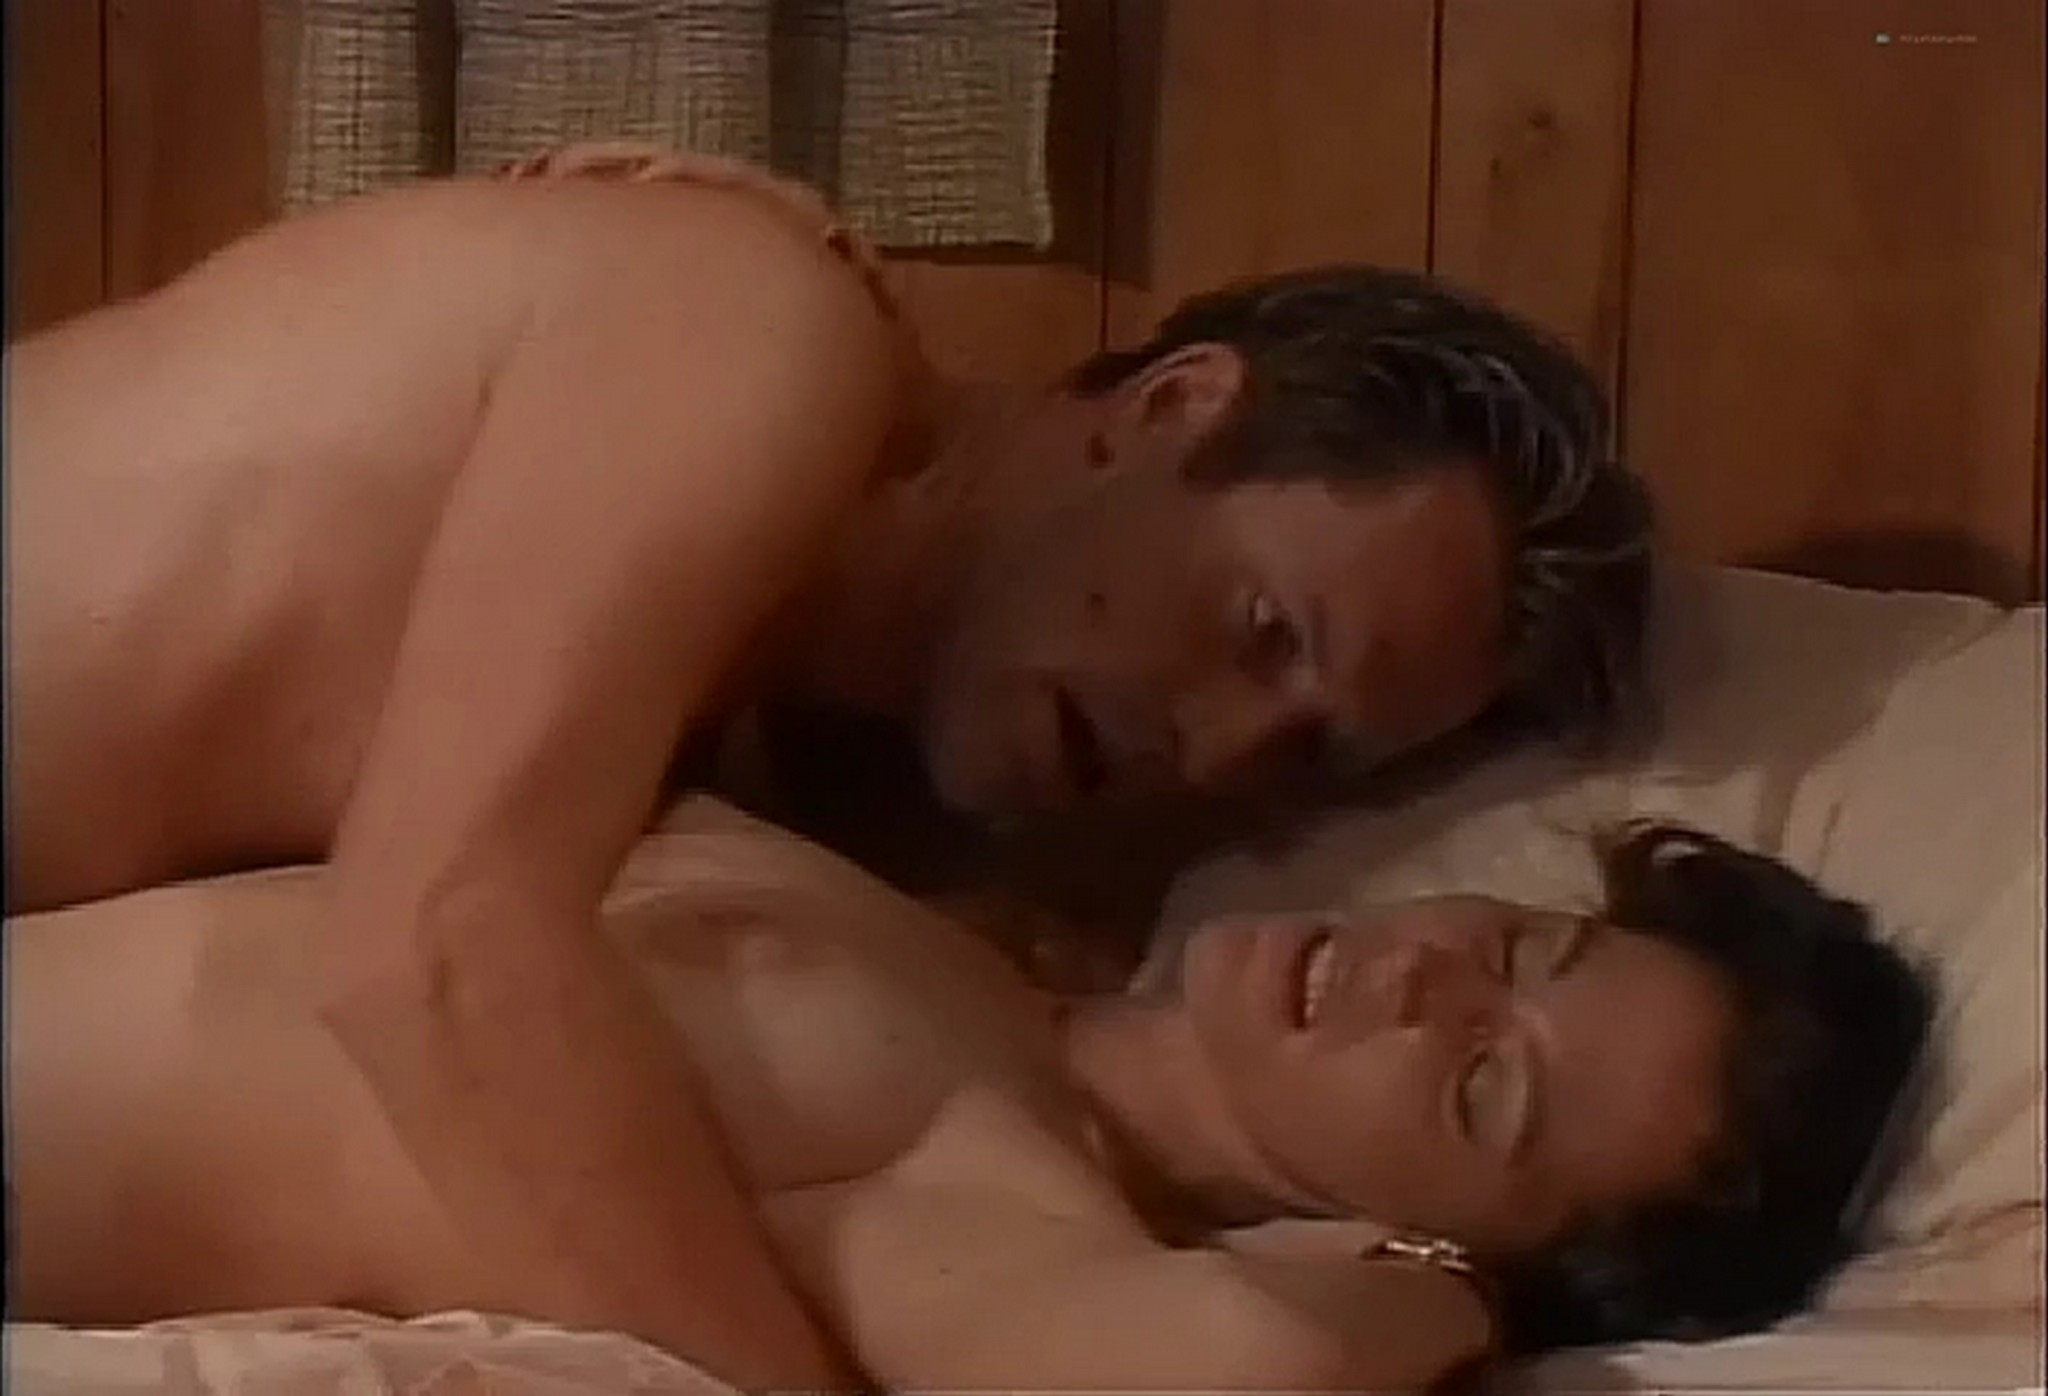 Jacqueline Lovell nude full frontal Kira Reed Shauna OBrien etc nude hot sex Damiens Seed 1996 015